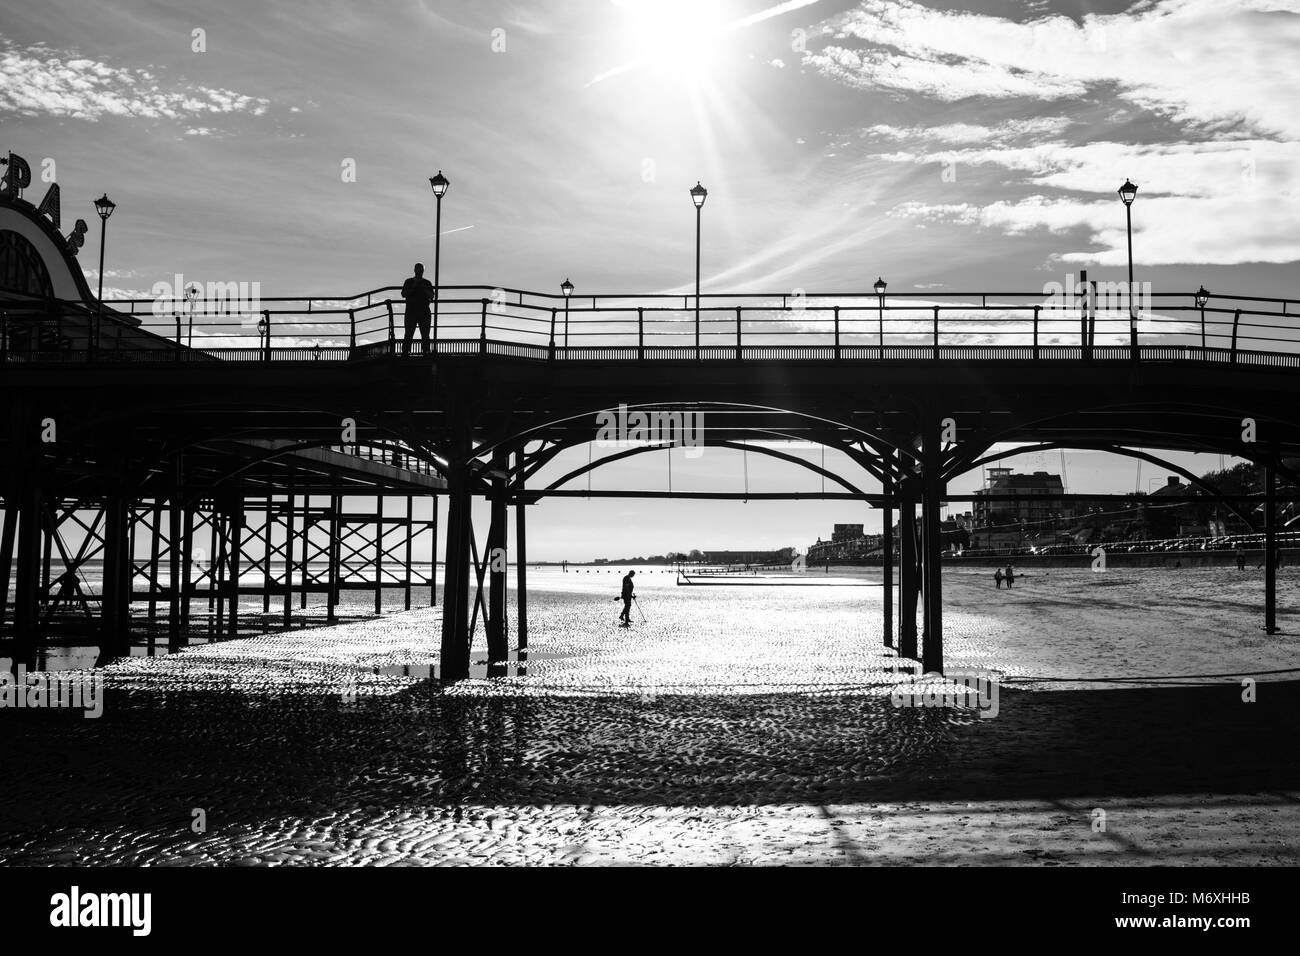 Cleethorpes pier silhouetted at sunrise in winter. Cleethorpes, North East Lincolnshire, England, UK - Stock Image